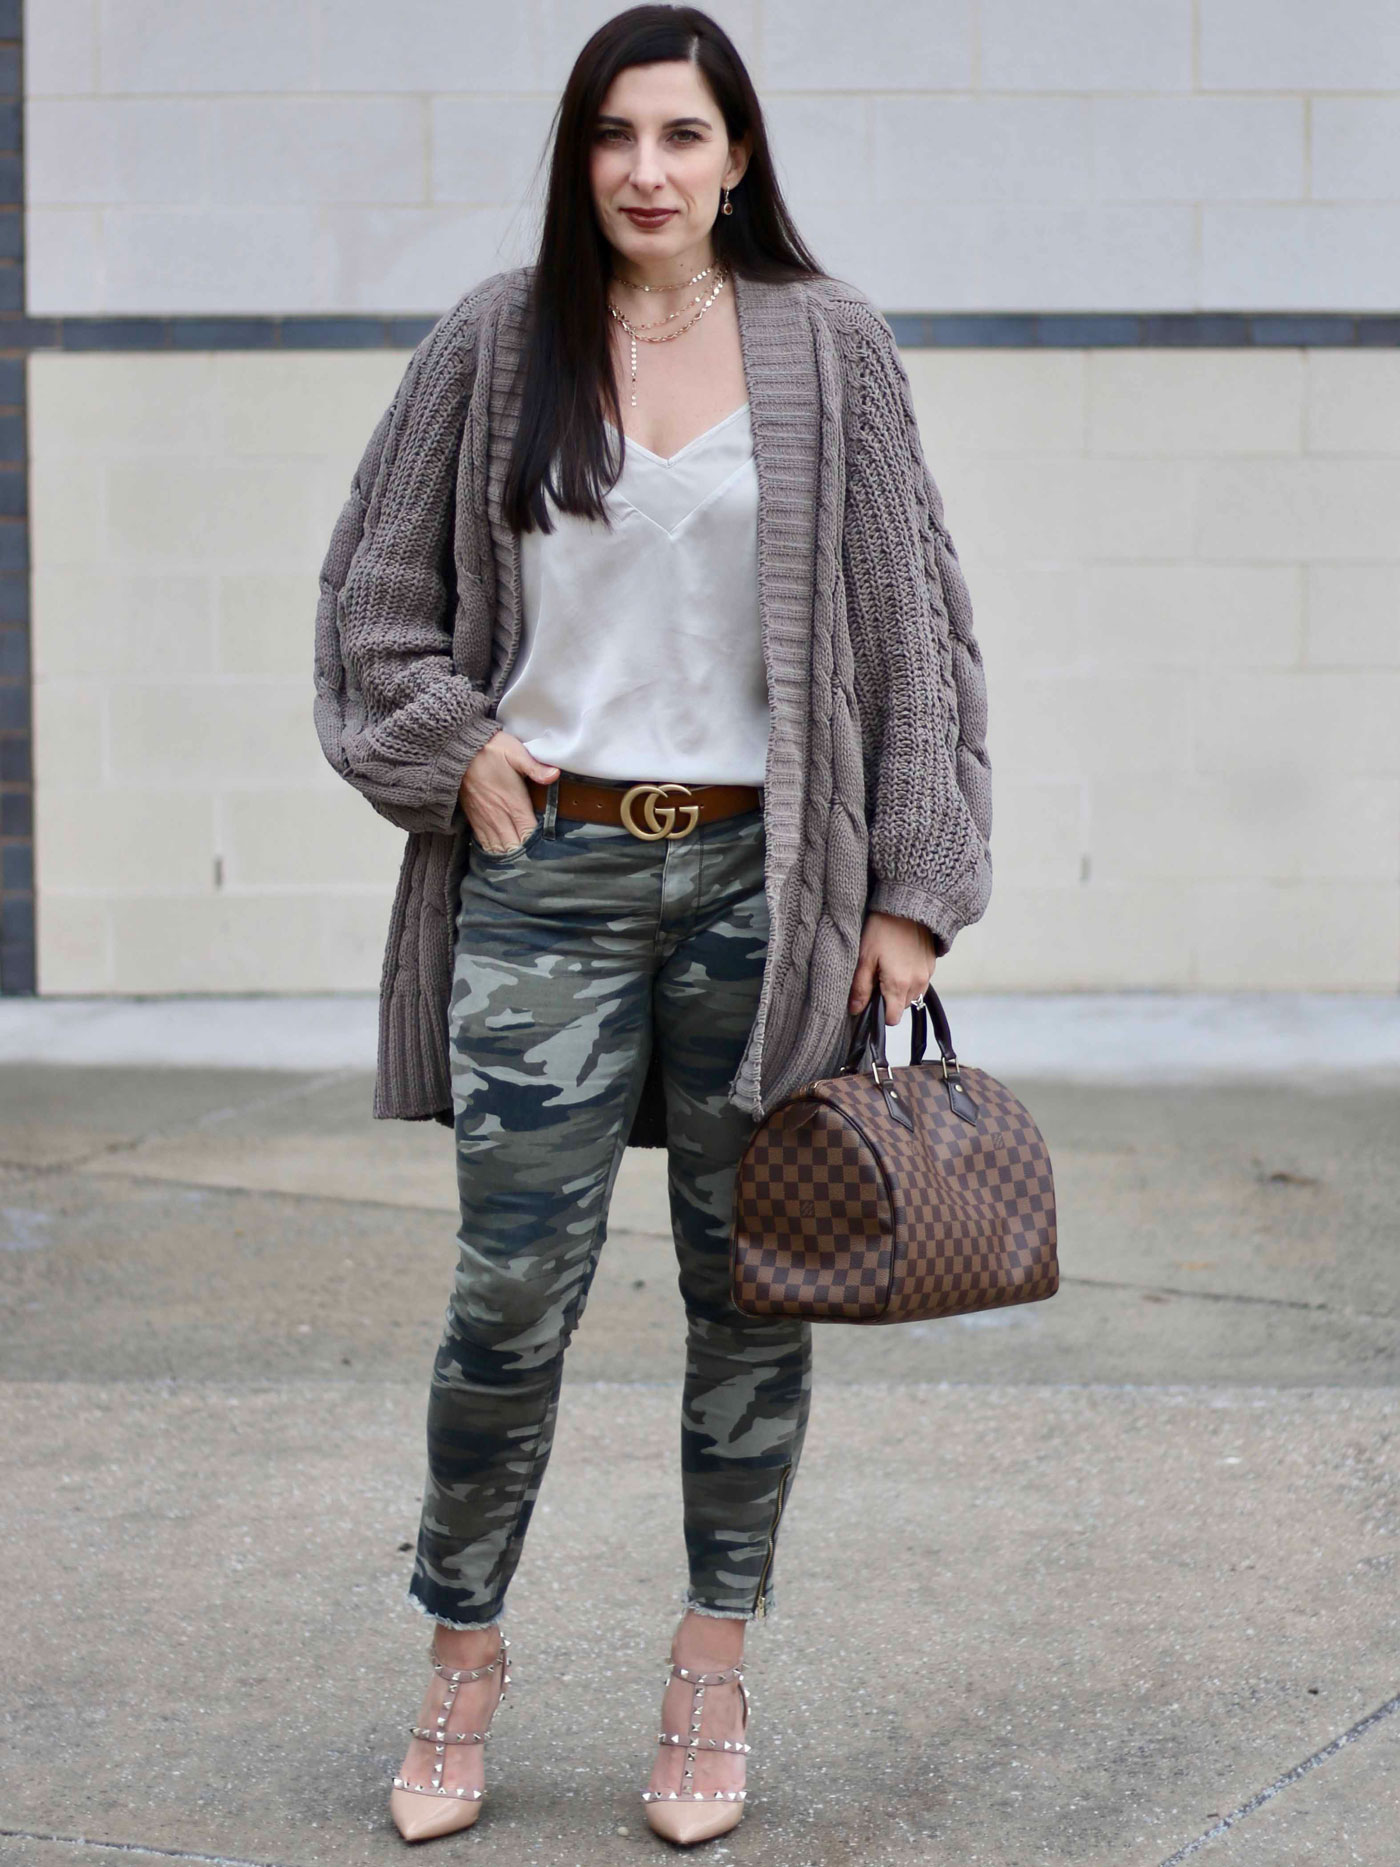 Express Camo Pants, Express Chenille Sweater, Target Satin Cami, Valentino Rockstud Pumps, Baublebar Necklace, Louis Vuitton Speedy